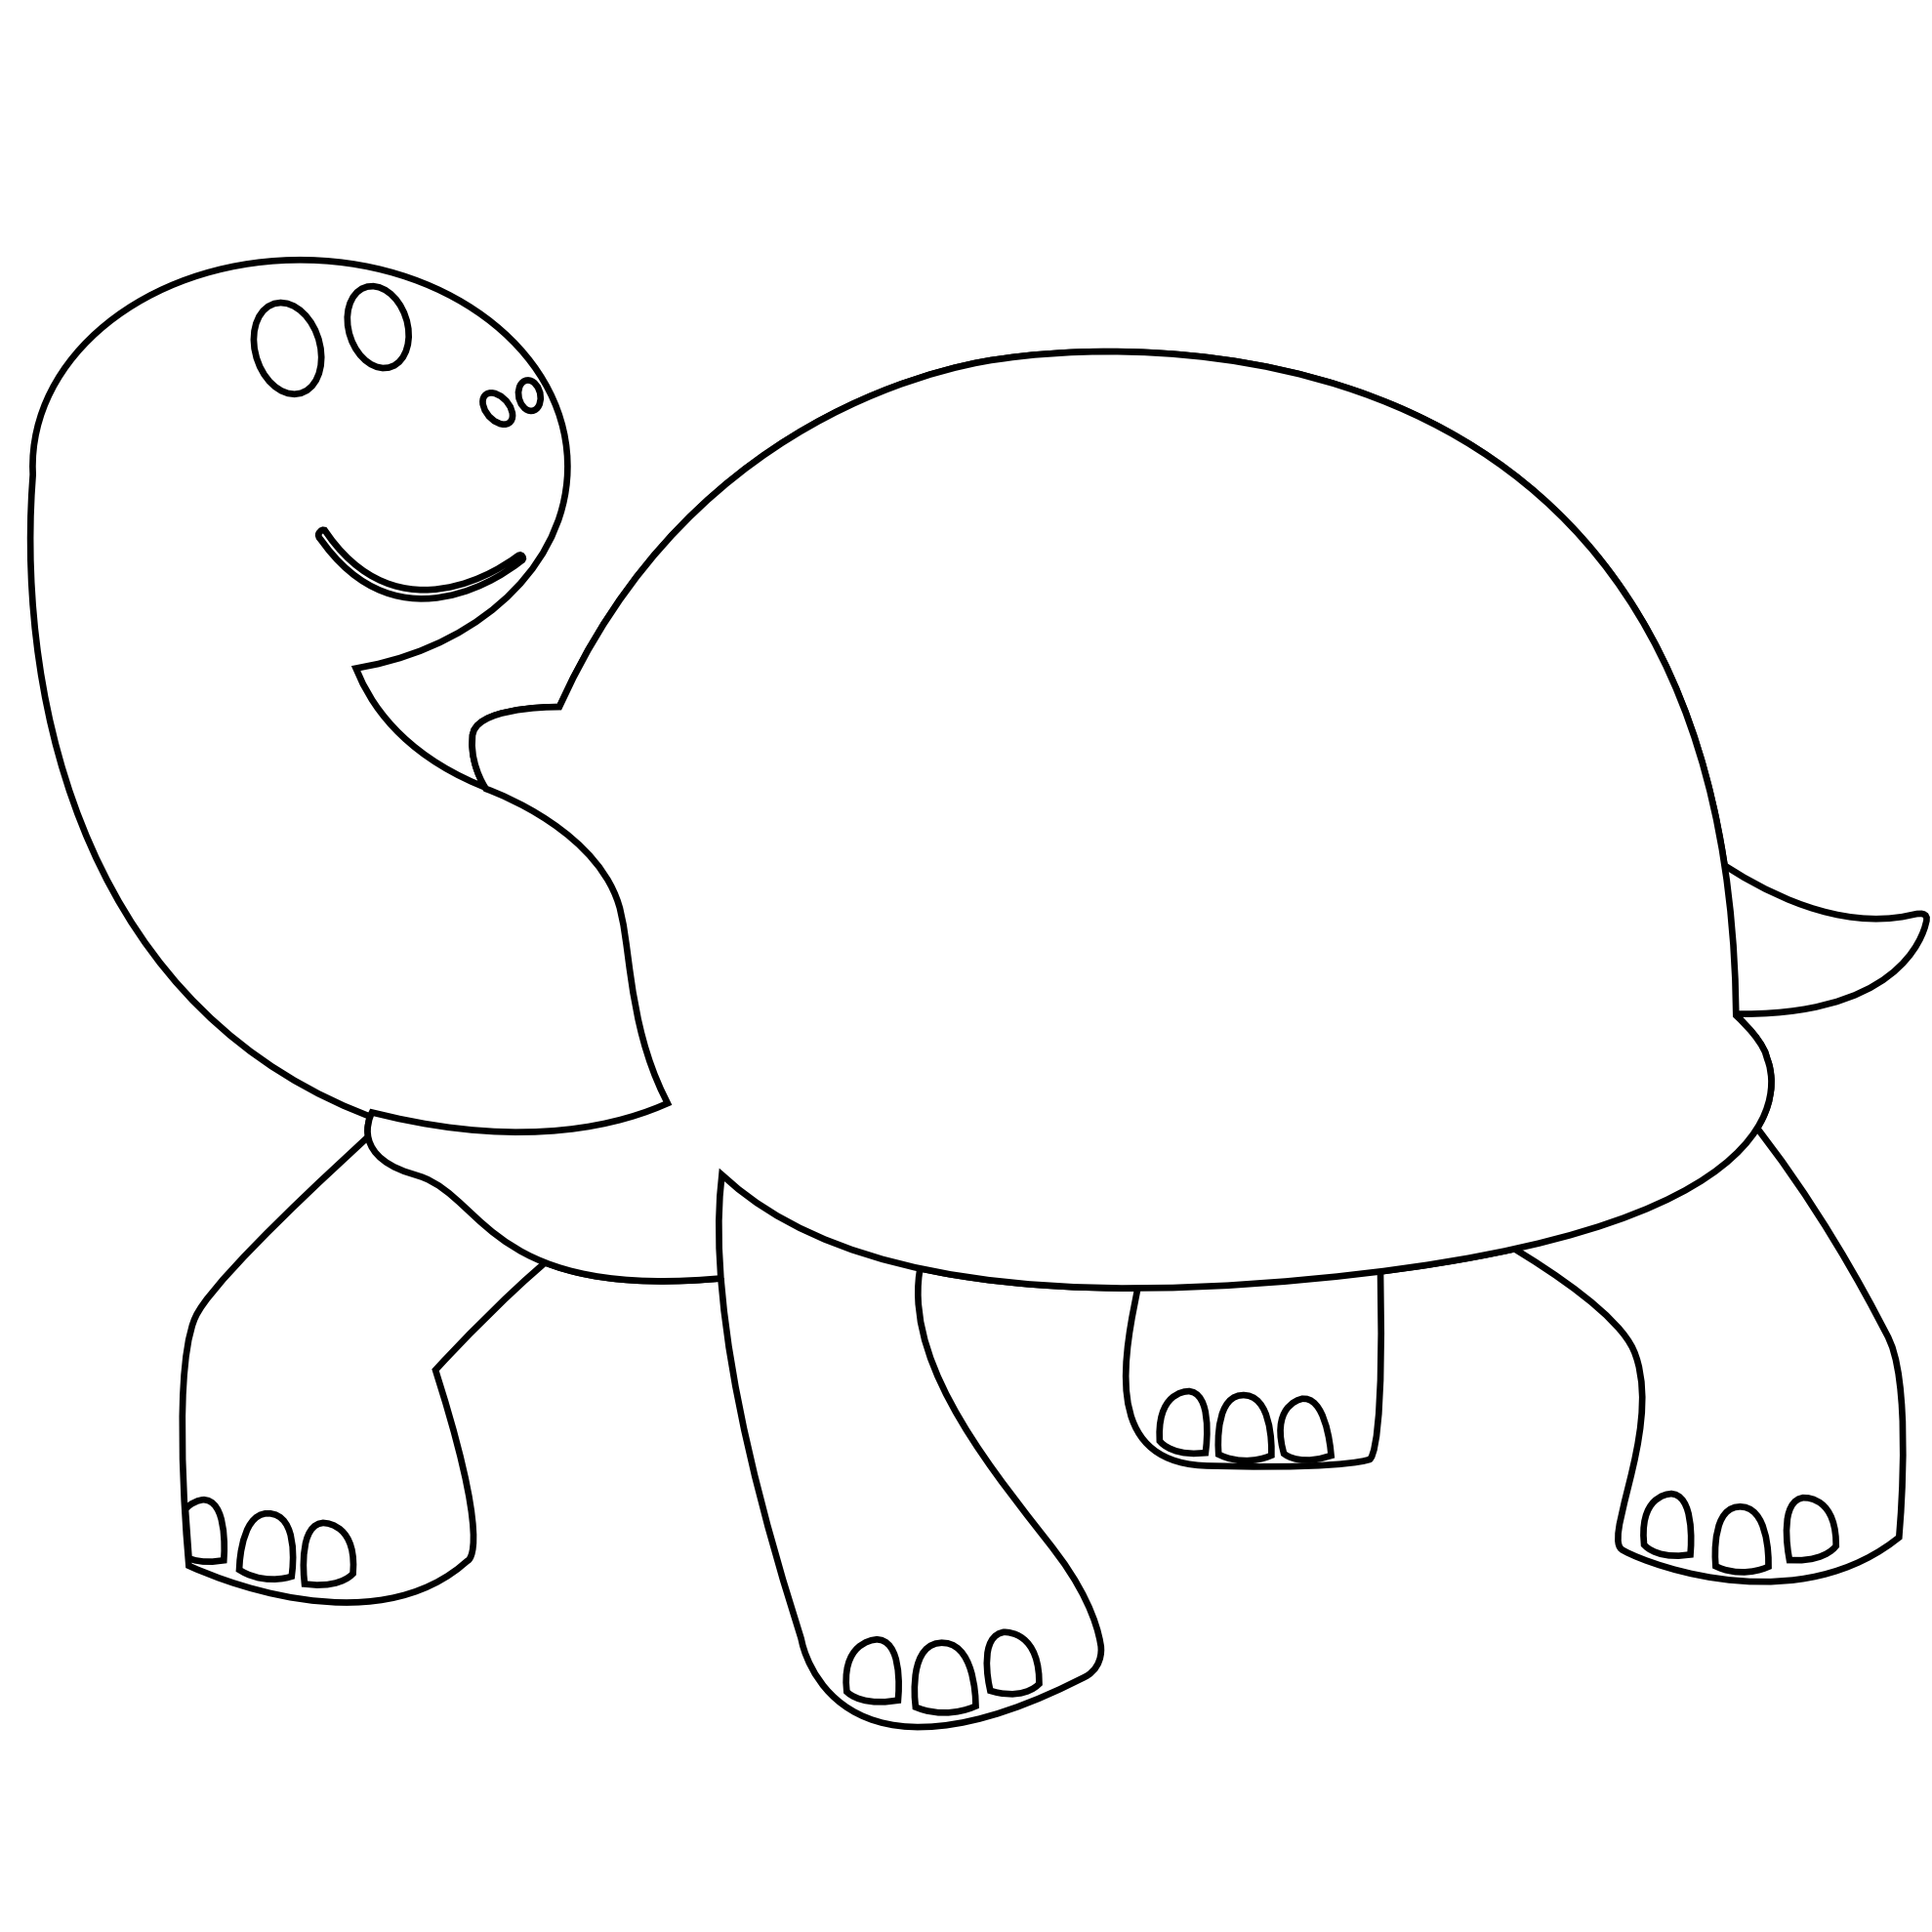 Black And White Line Drawings Of Animals : Line drawing animals clipart best